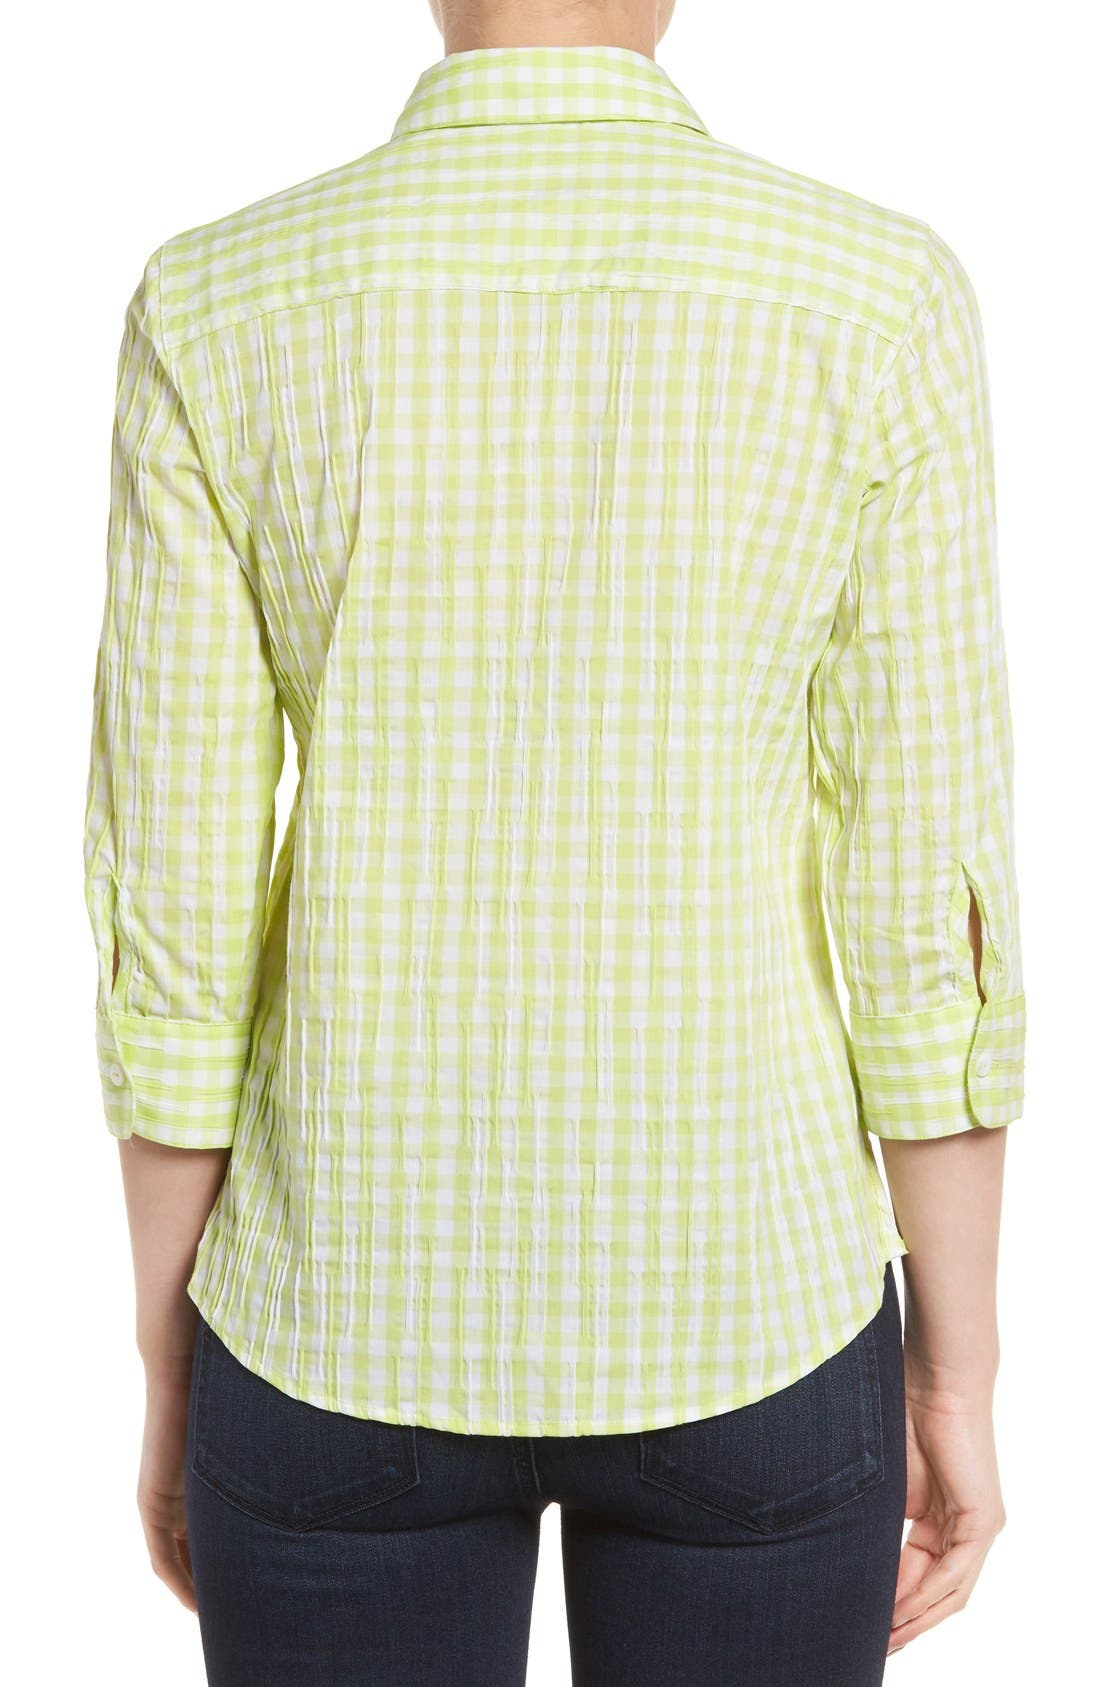 Alternate Image 2  - Foxcroft Crinkled Gingham Shirt (Regular & Petite)